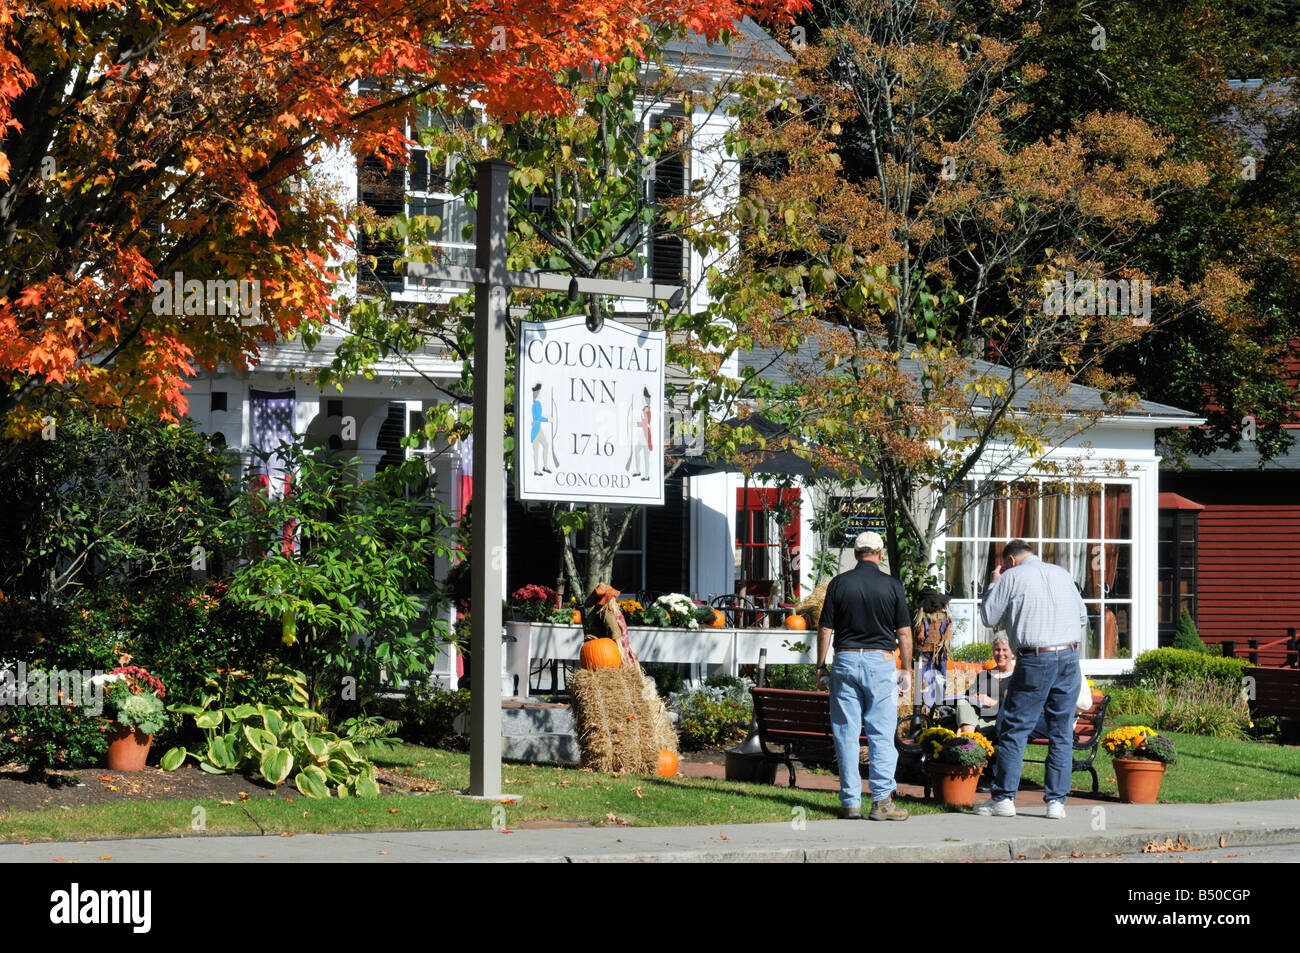 Exterior of Colonial Inn, circa 1716 in Historic Concord Massachusetts in fall with people, pumpkins, sign and building - Stock Image